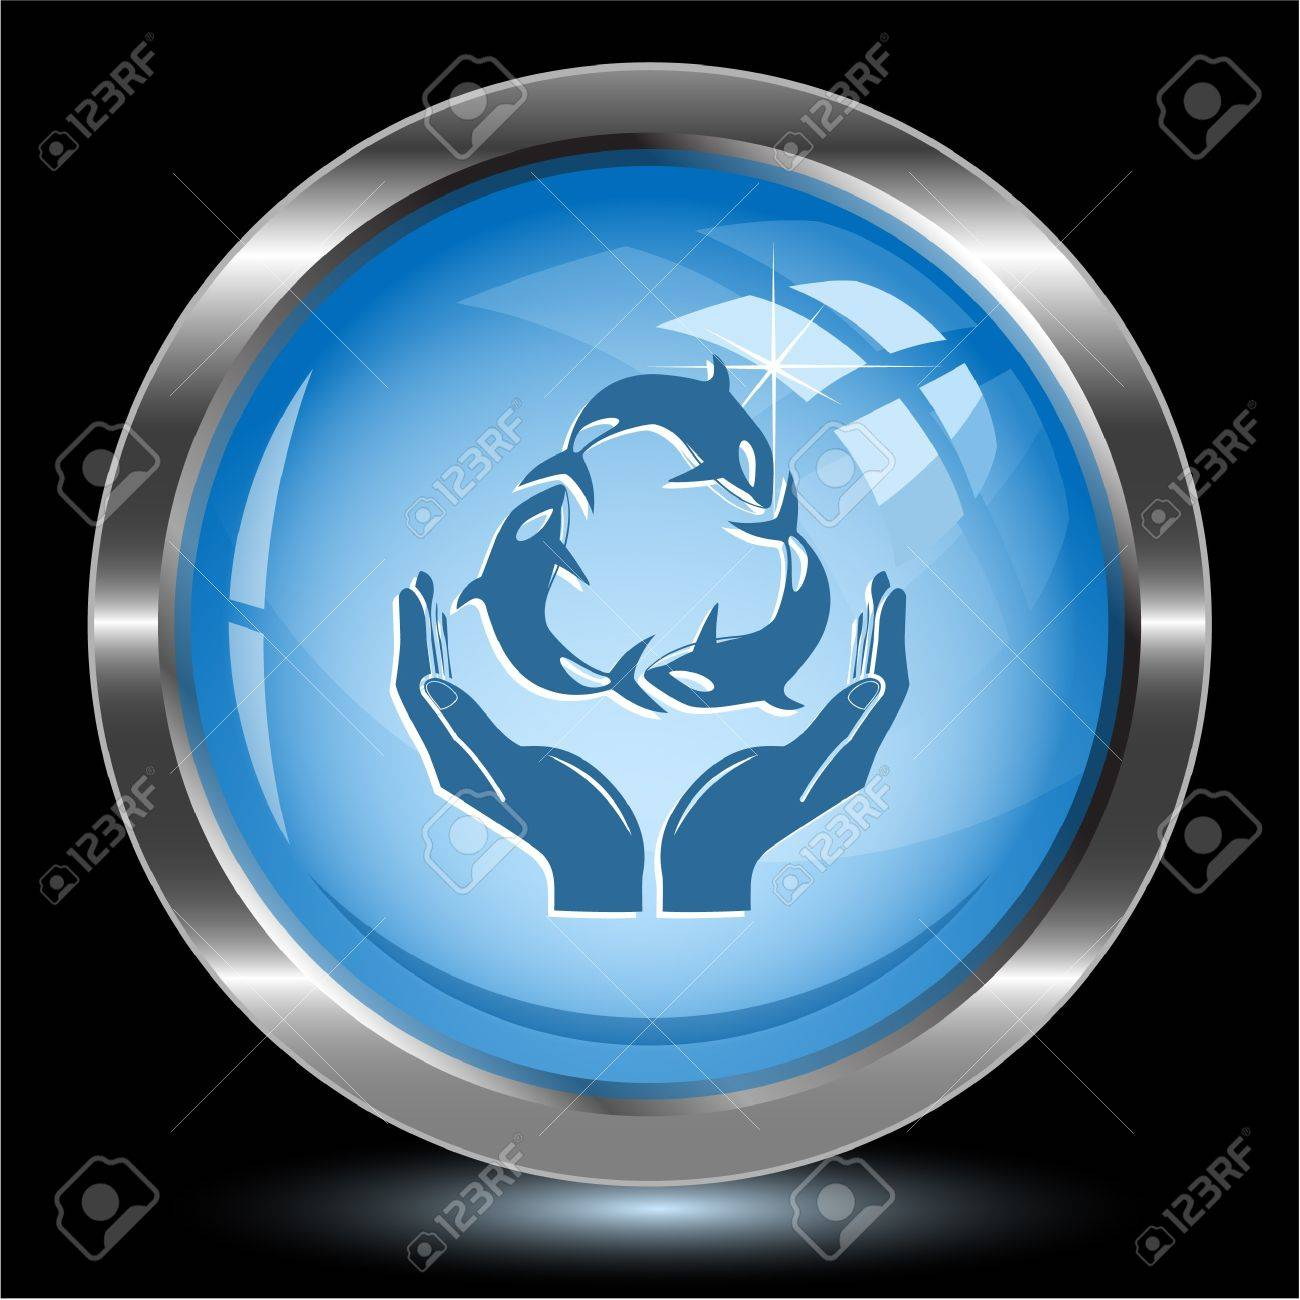 Protection nature. Internet button. Vector illustration. Stock Illustration - 17443230